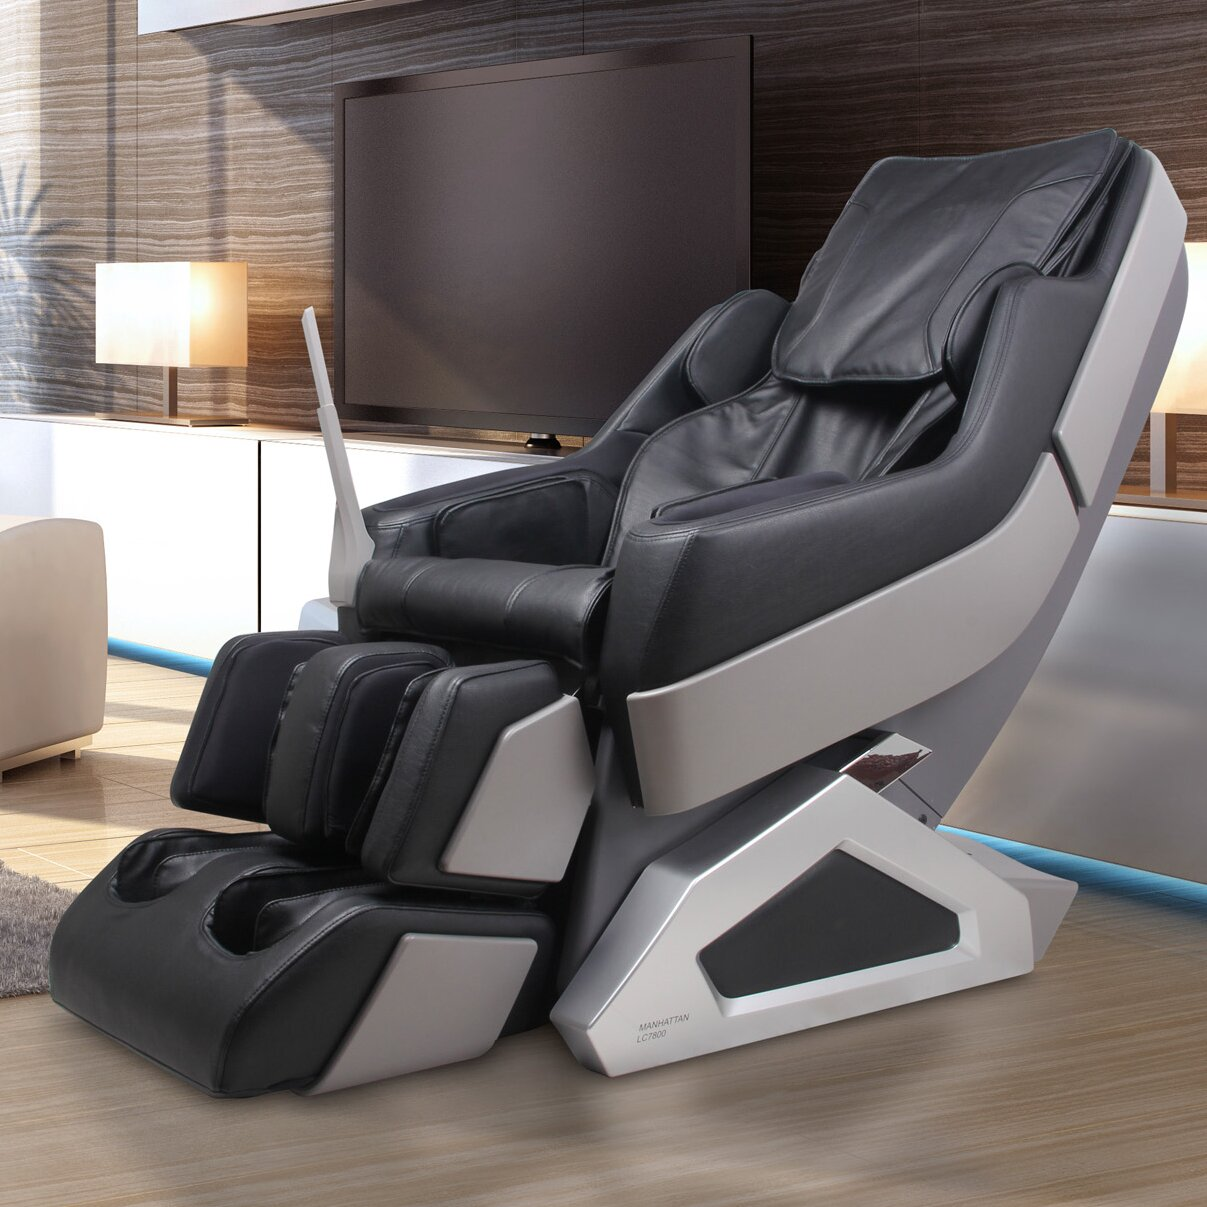 Dynamic massage chairs manhattan edition zero gravity for Living room zero gravity chair